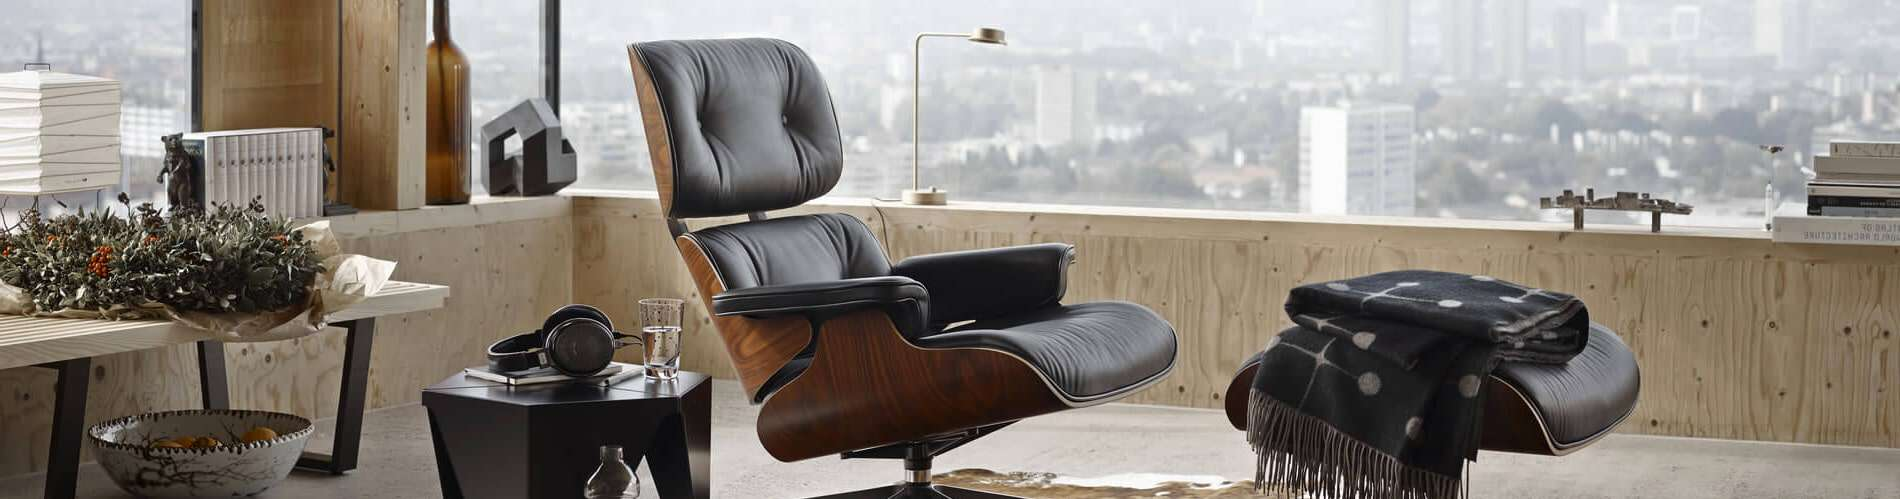 Tremendous Buy Eames Lounge Chair Premium Reproduction At Bybespoek Machost Co Dining Chair Design Ideas Machostcouk